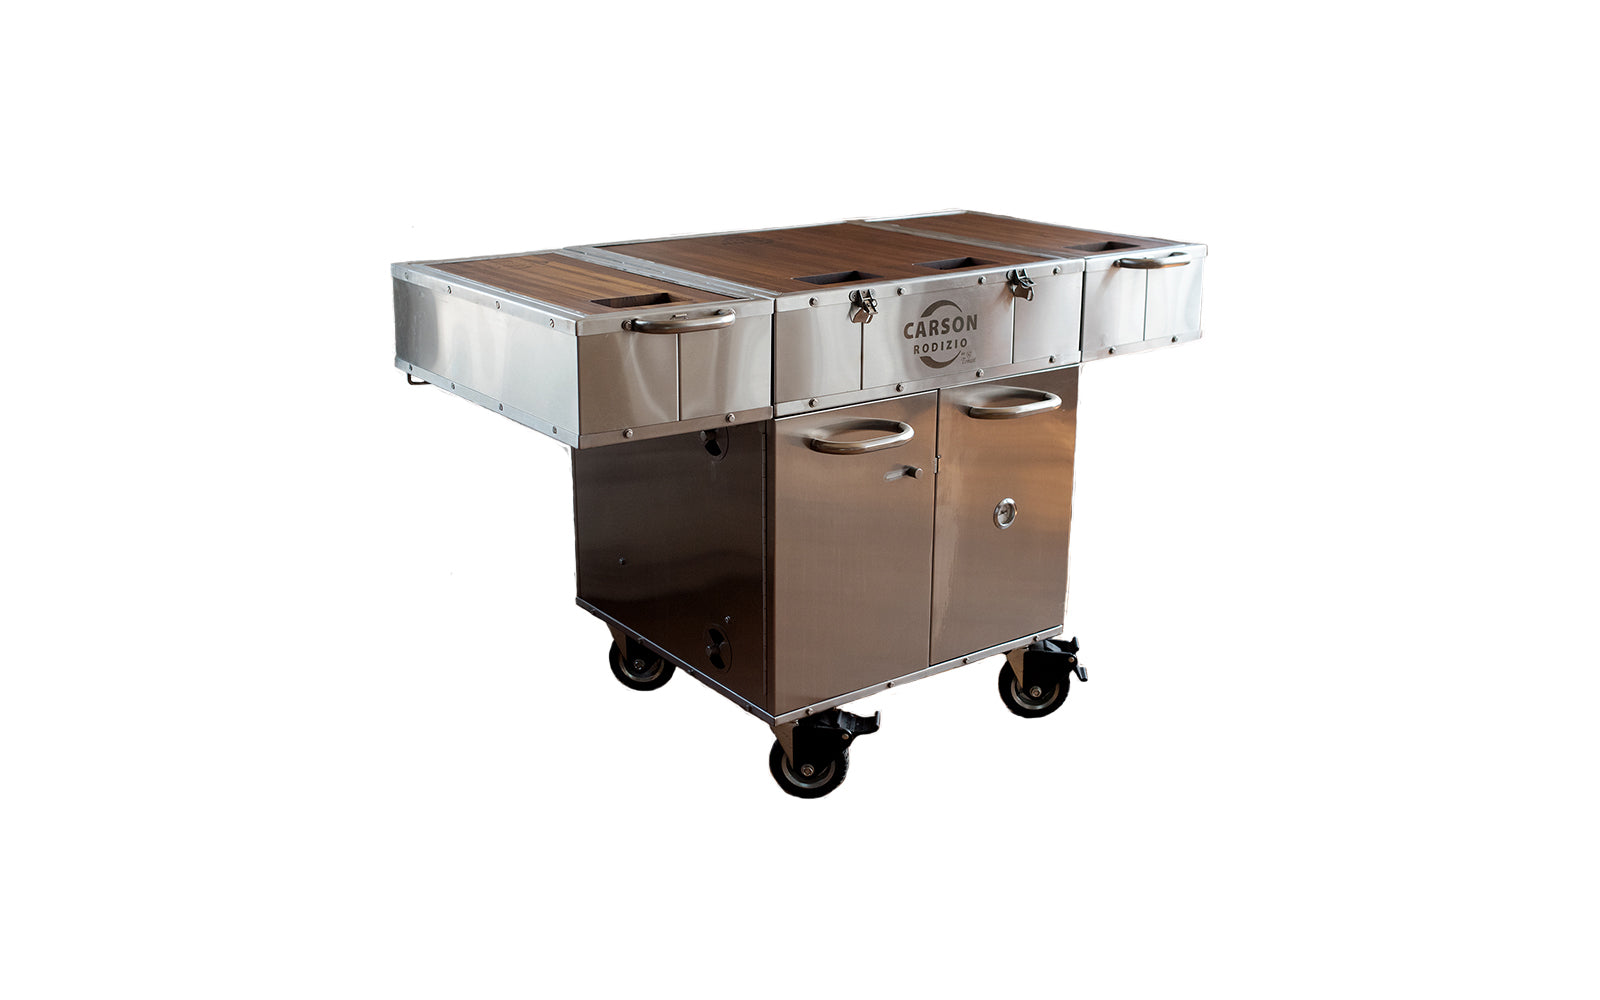 CARSON RODIZIO ROADCASE MONILE KITCHEN COOKER SMOKER GRILL OVEN SINK GRIDDLE